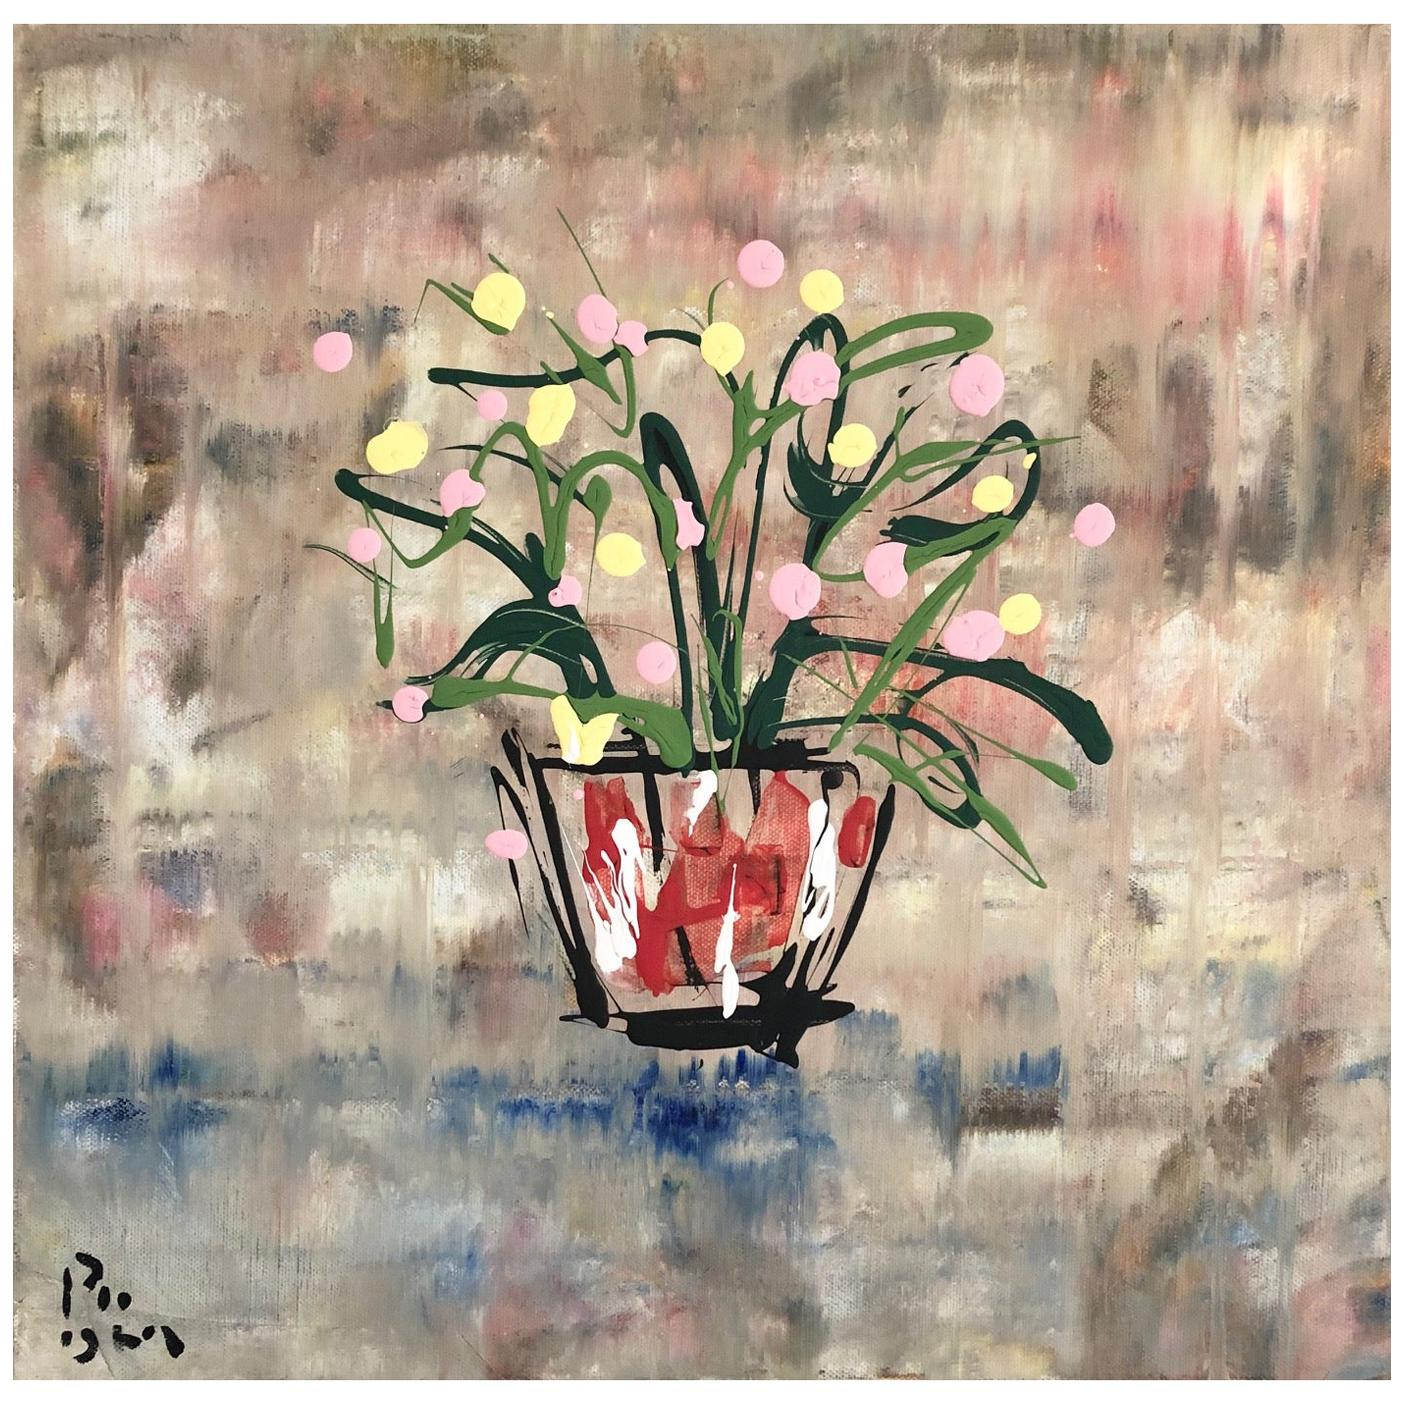 Andrew Plum Printemps Paris Contemporary Abstract Painting, 2009